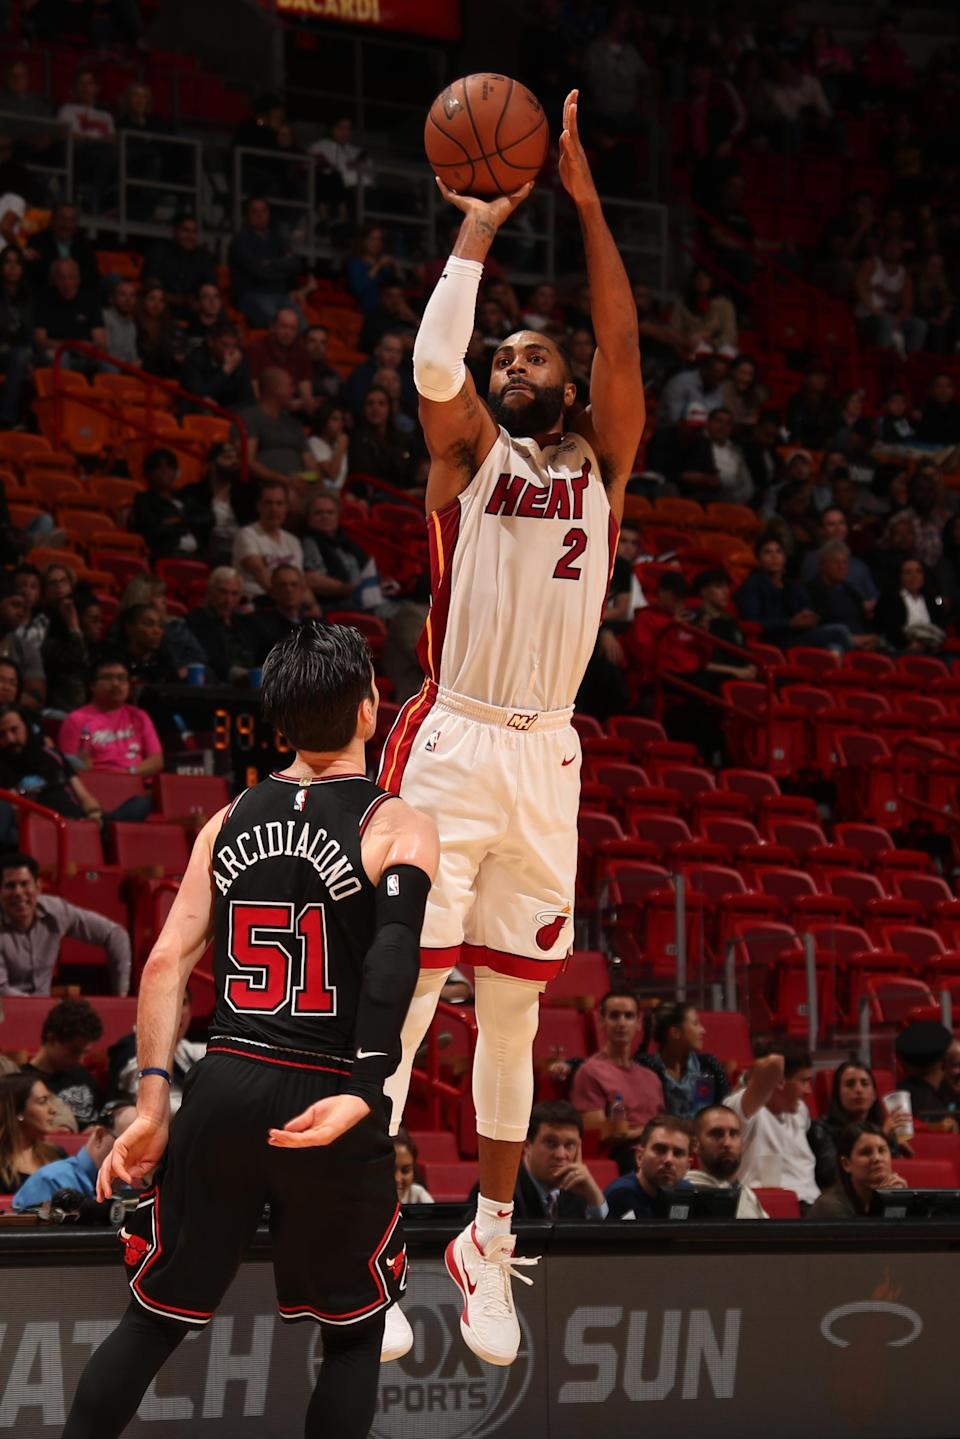 MIAMI, FL - JANUARY 30: Wayne Ellington #2 of the Miami Heat shoots the ball against the Chicago Bulls on January 30, 2019 at American Airlines Arena in Miami, Florida. (Photo by Issac Baldizon/NBAE via Getty Images)